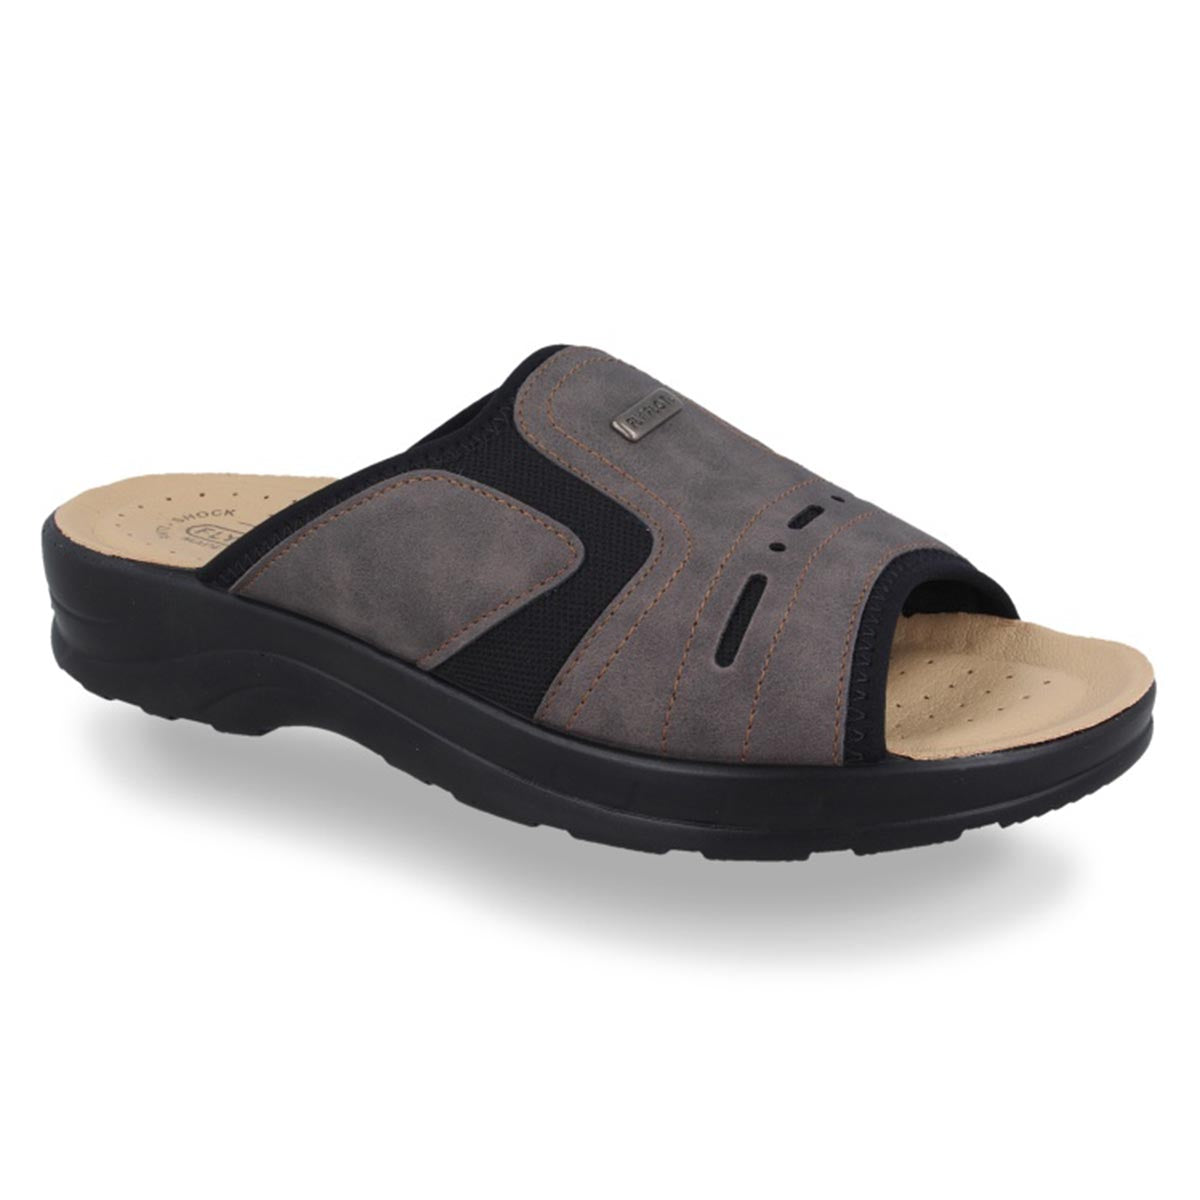 Synthetic Man Slipper Dark Brown (S5436cb)